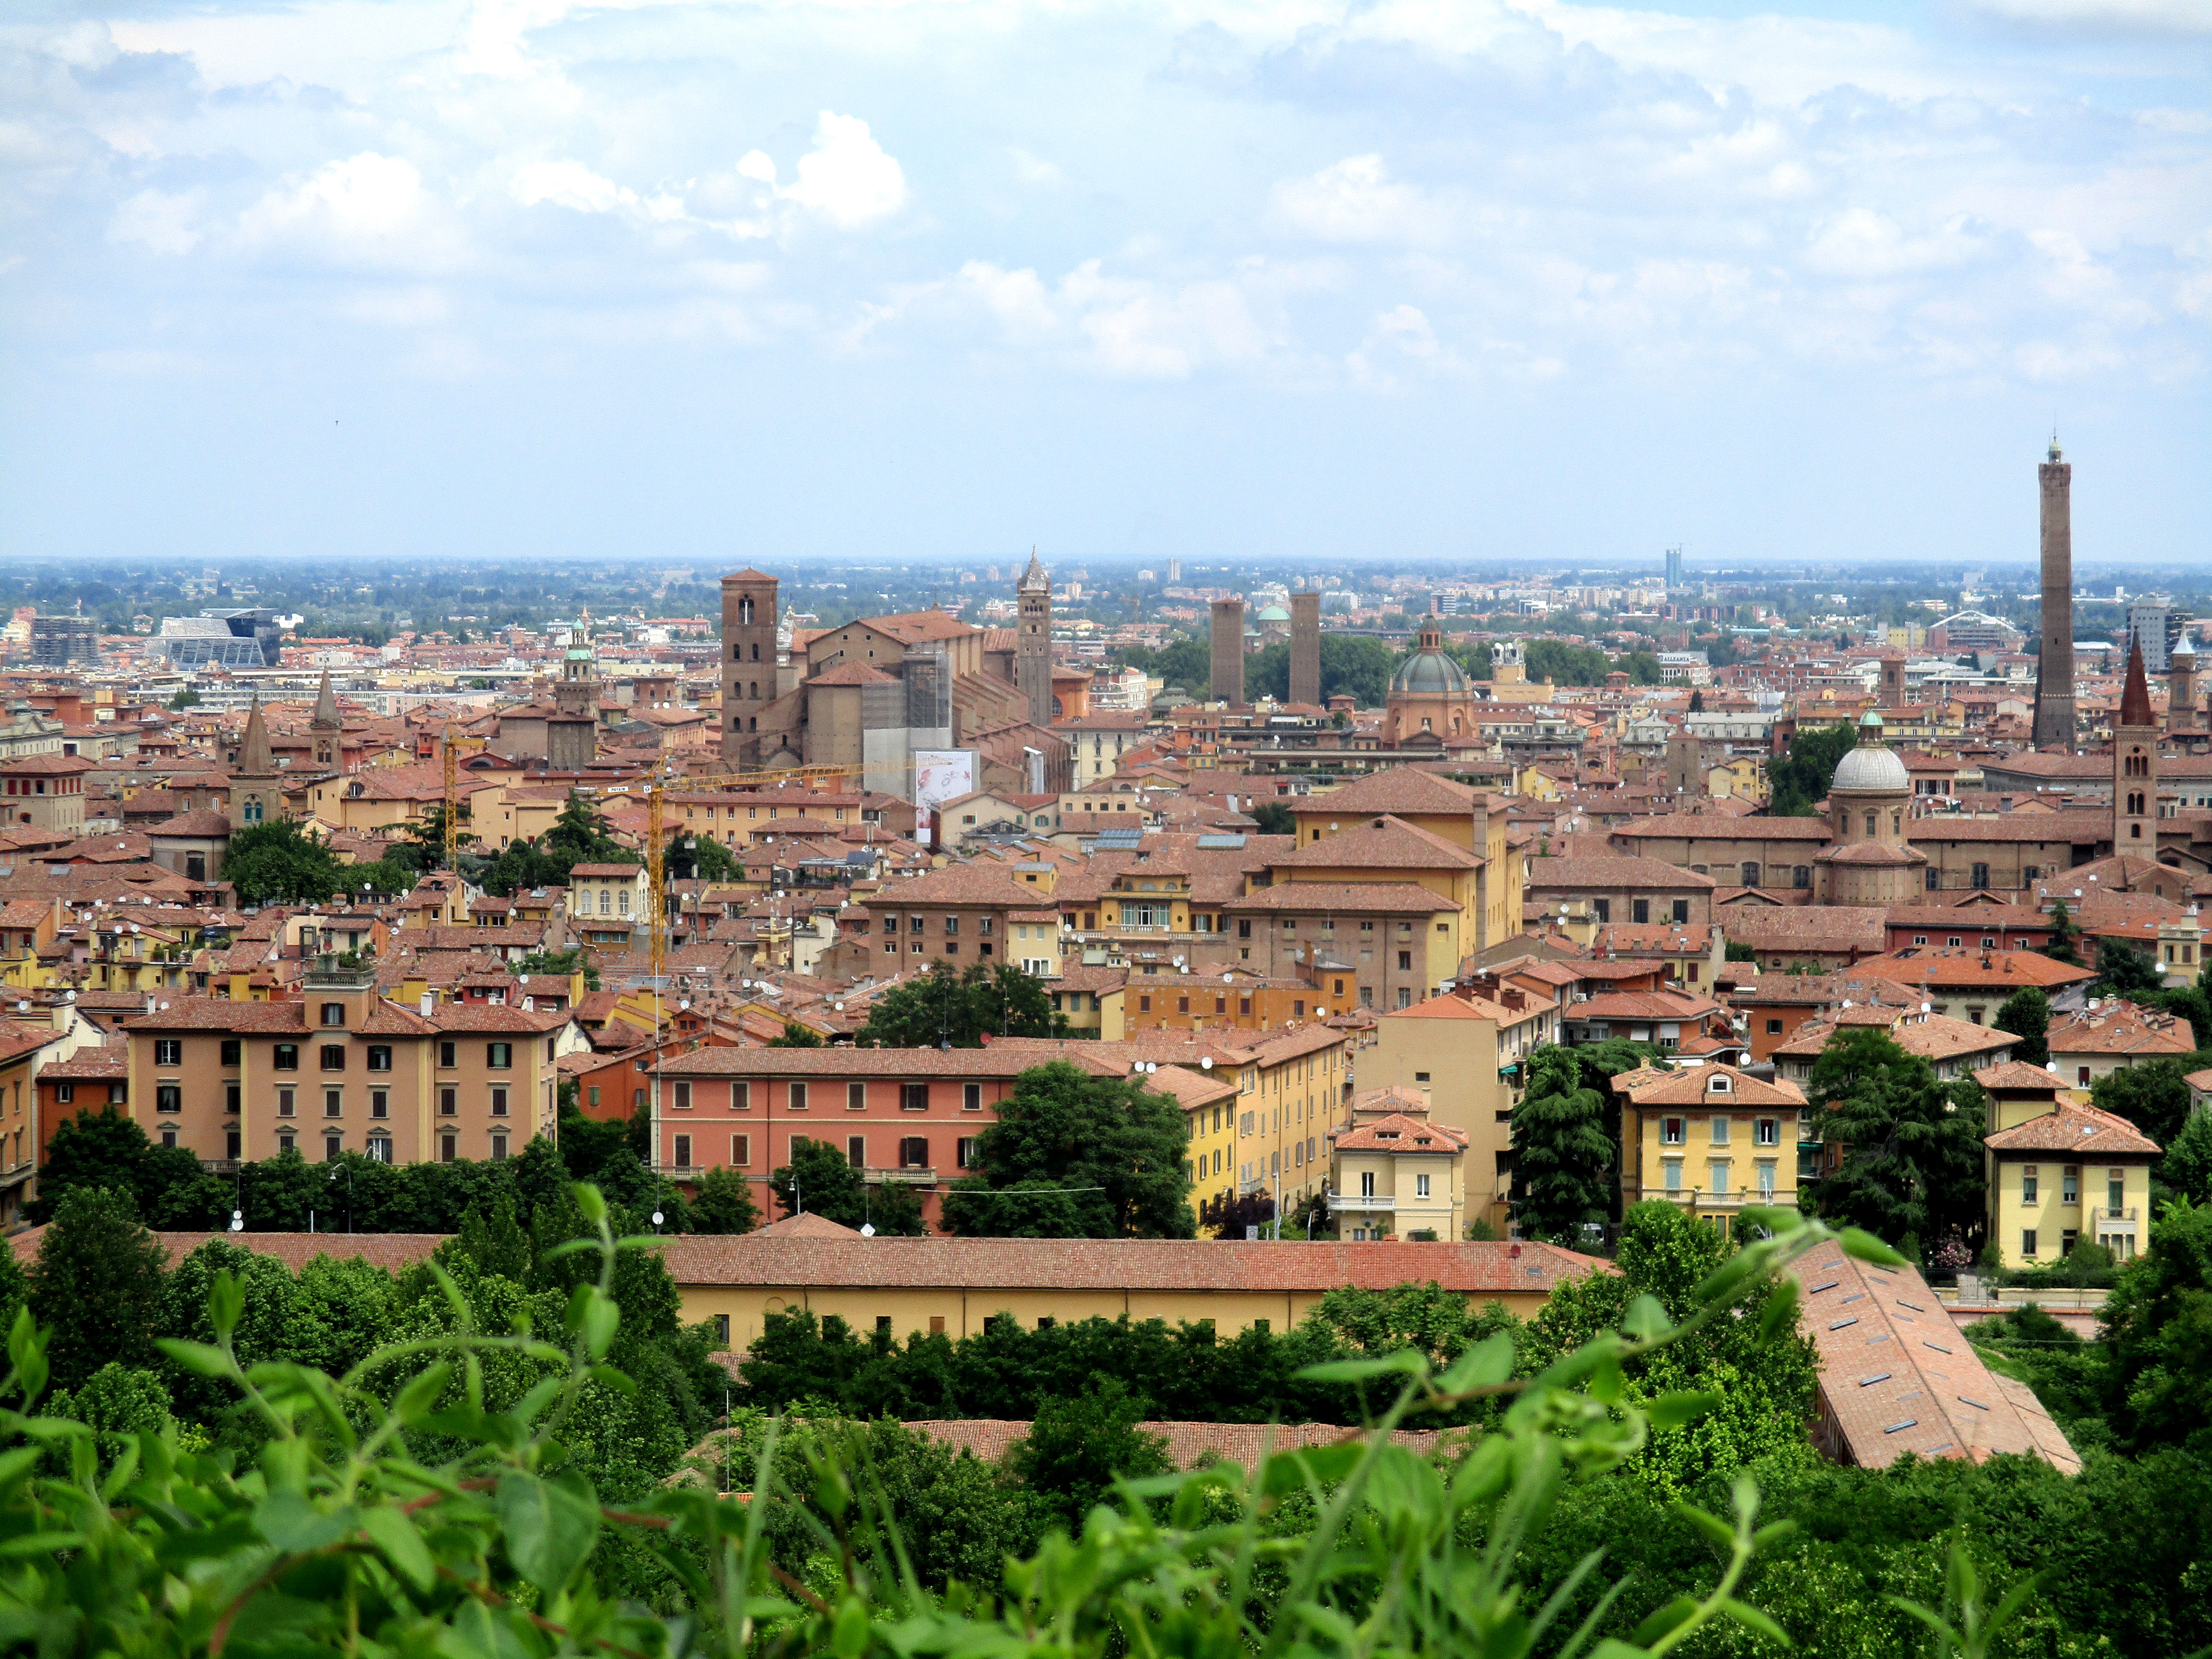 The Best of Bologna - Wandelen door de heuvels